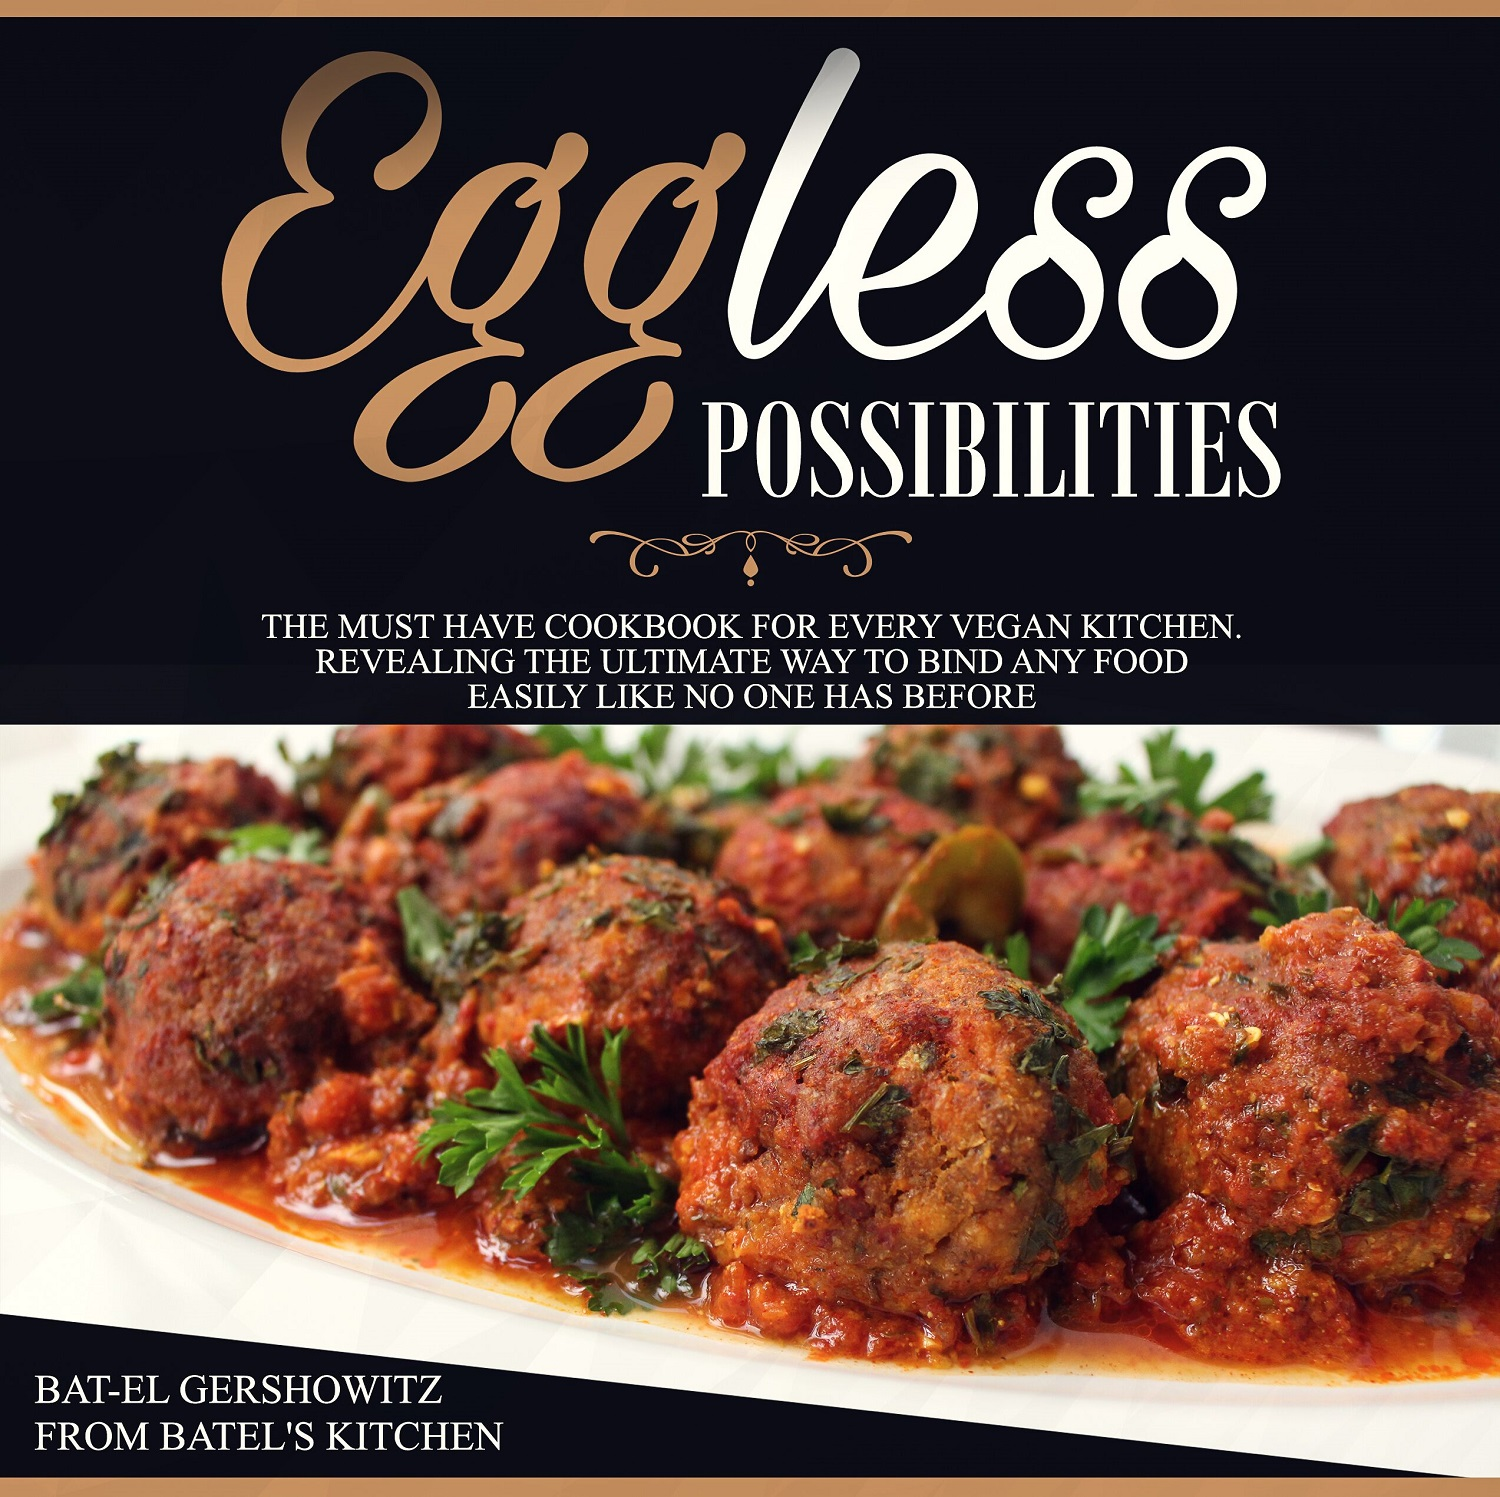 Eggless Possibilities - Batels Kitchen - Revised